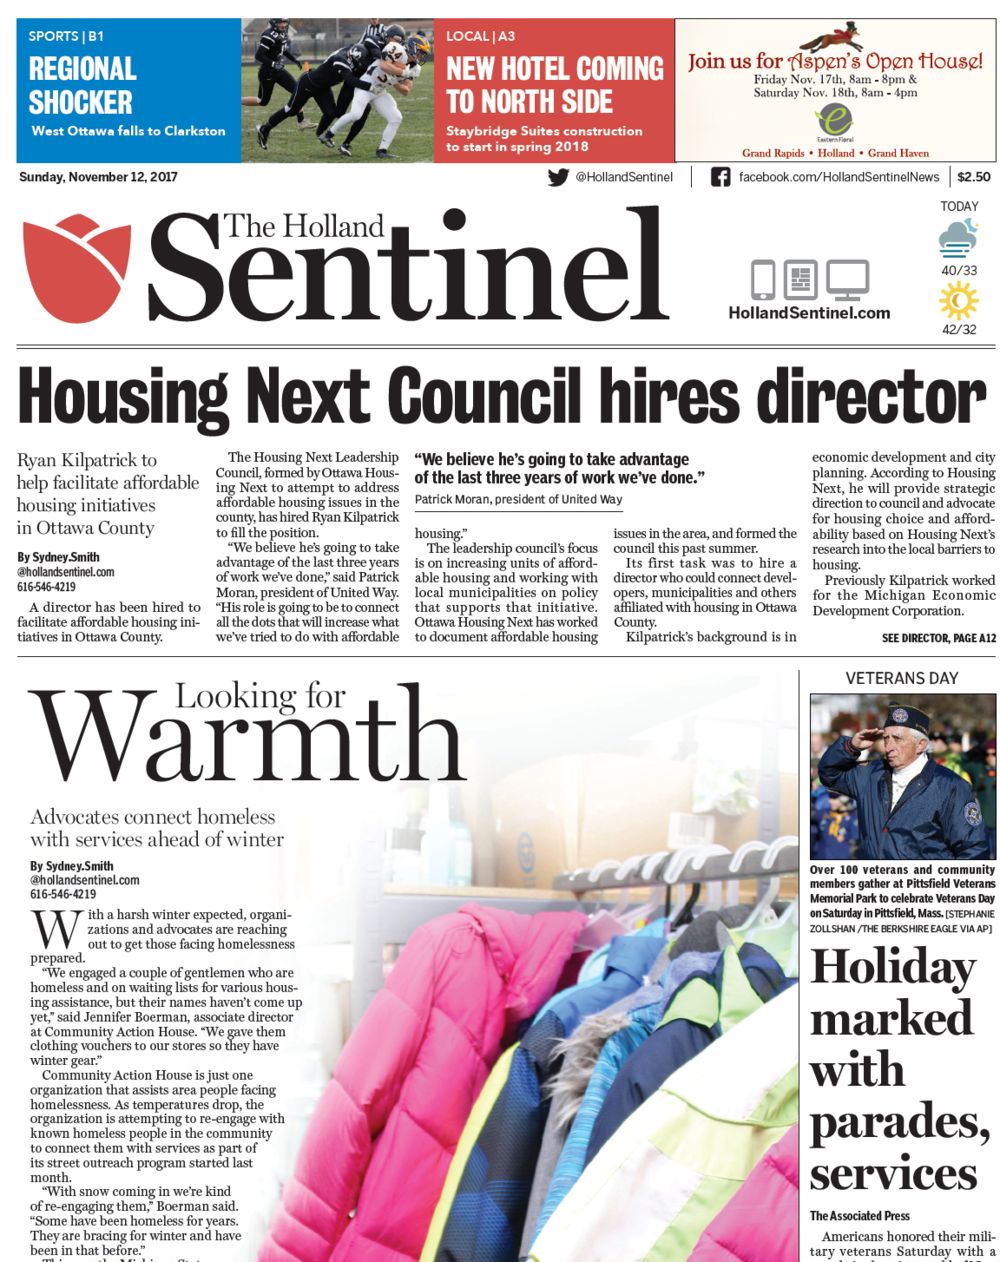 sentinel article 11-12-17.PNG